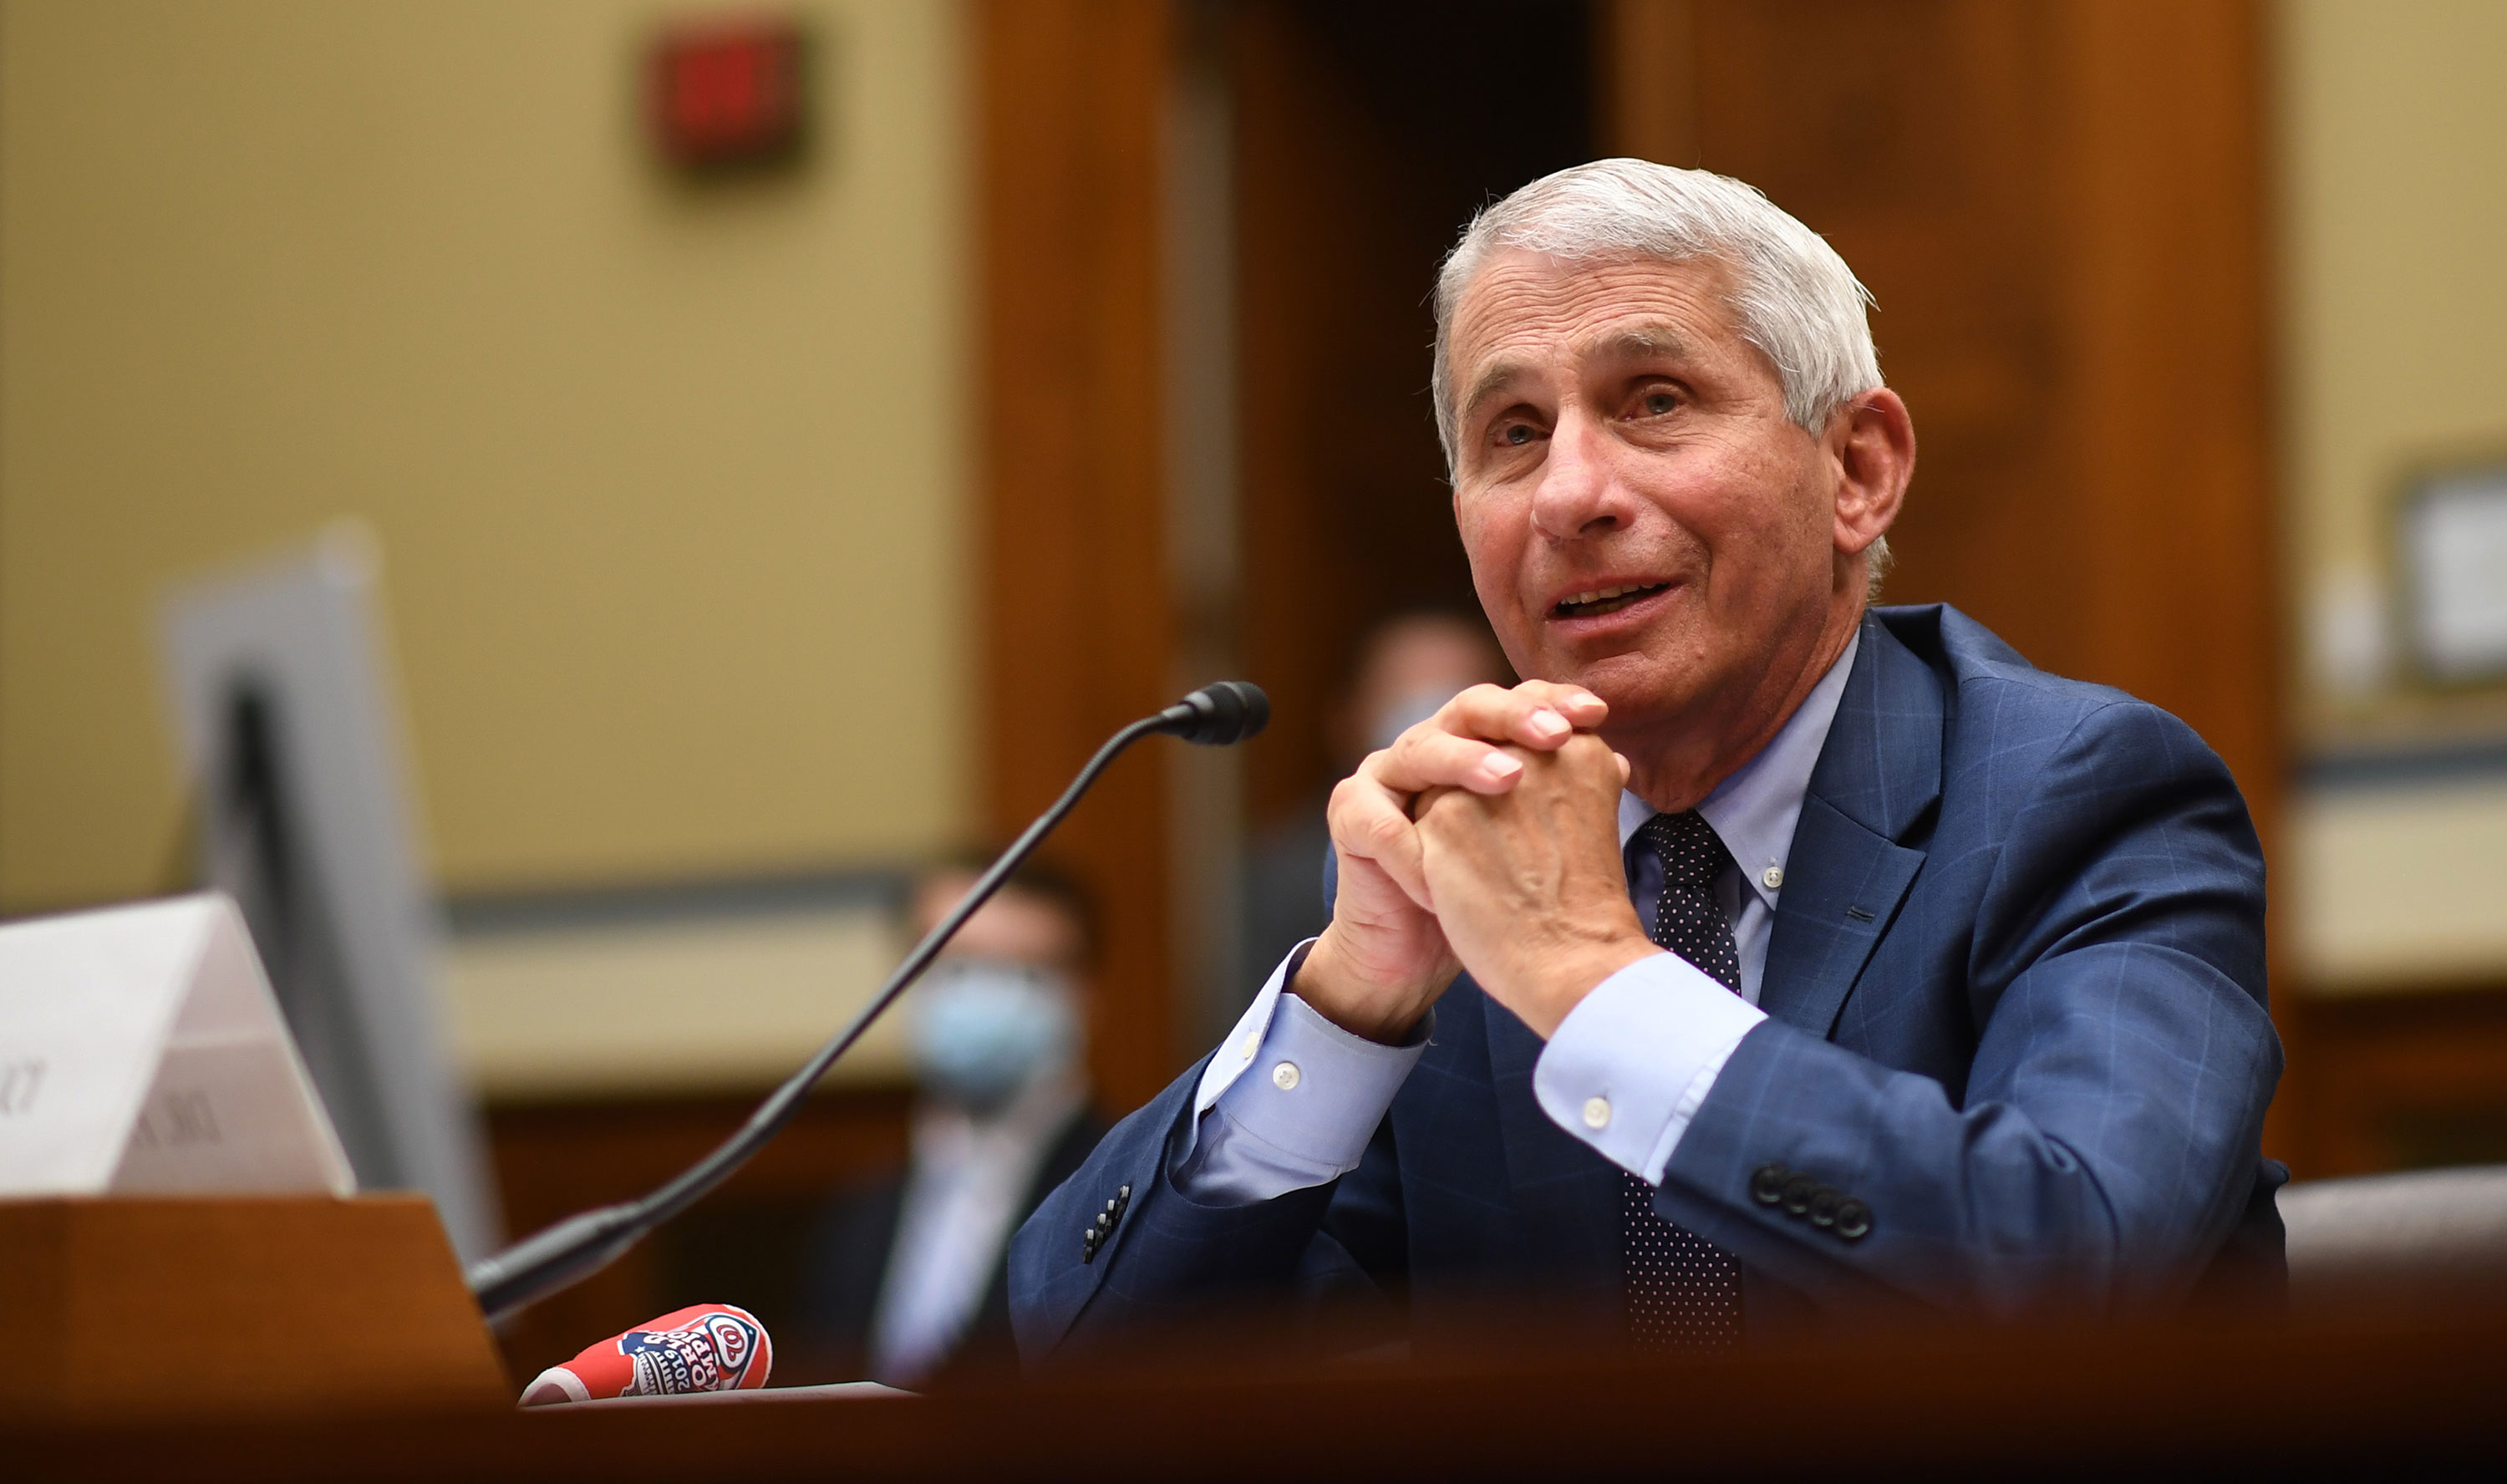 Dr. Anthony Fauci, director of the National Institute for Allergy and Infectious Diseases, testifies before a House Subcommittee on the Coronavirus Crisis hearing on July 31 in Washington, DC.